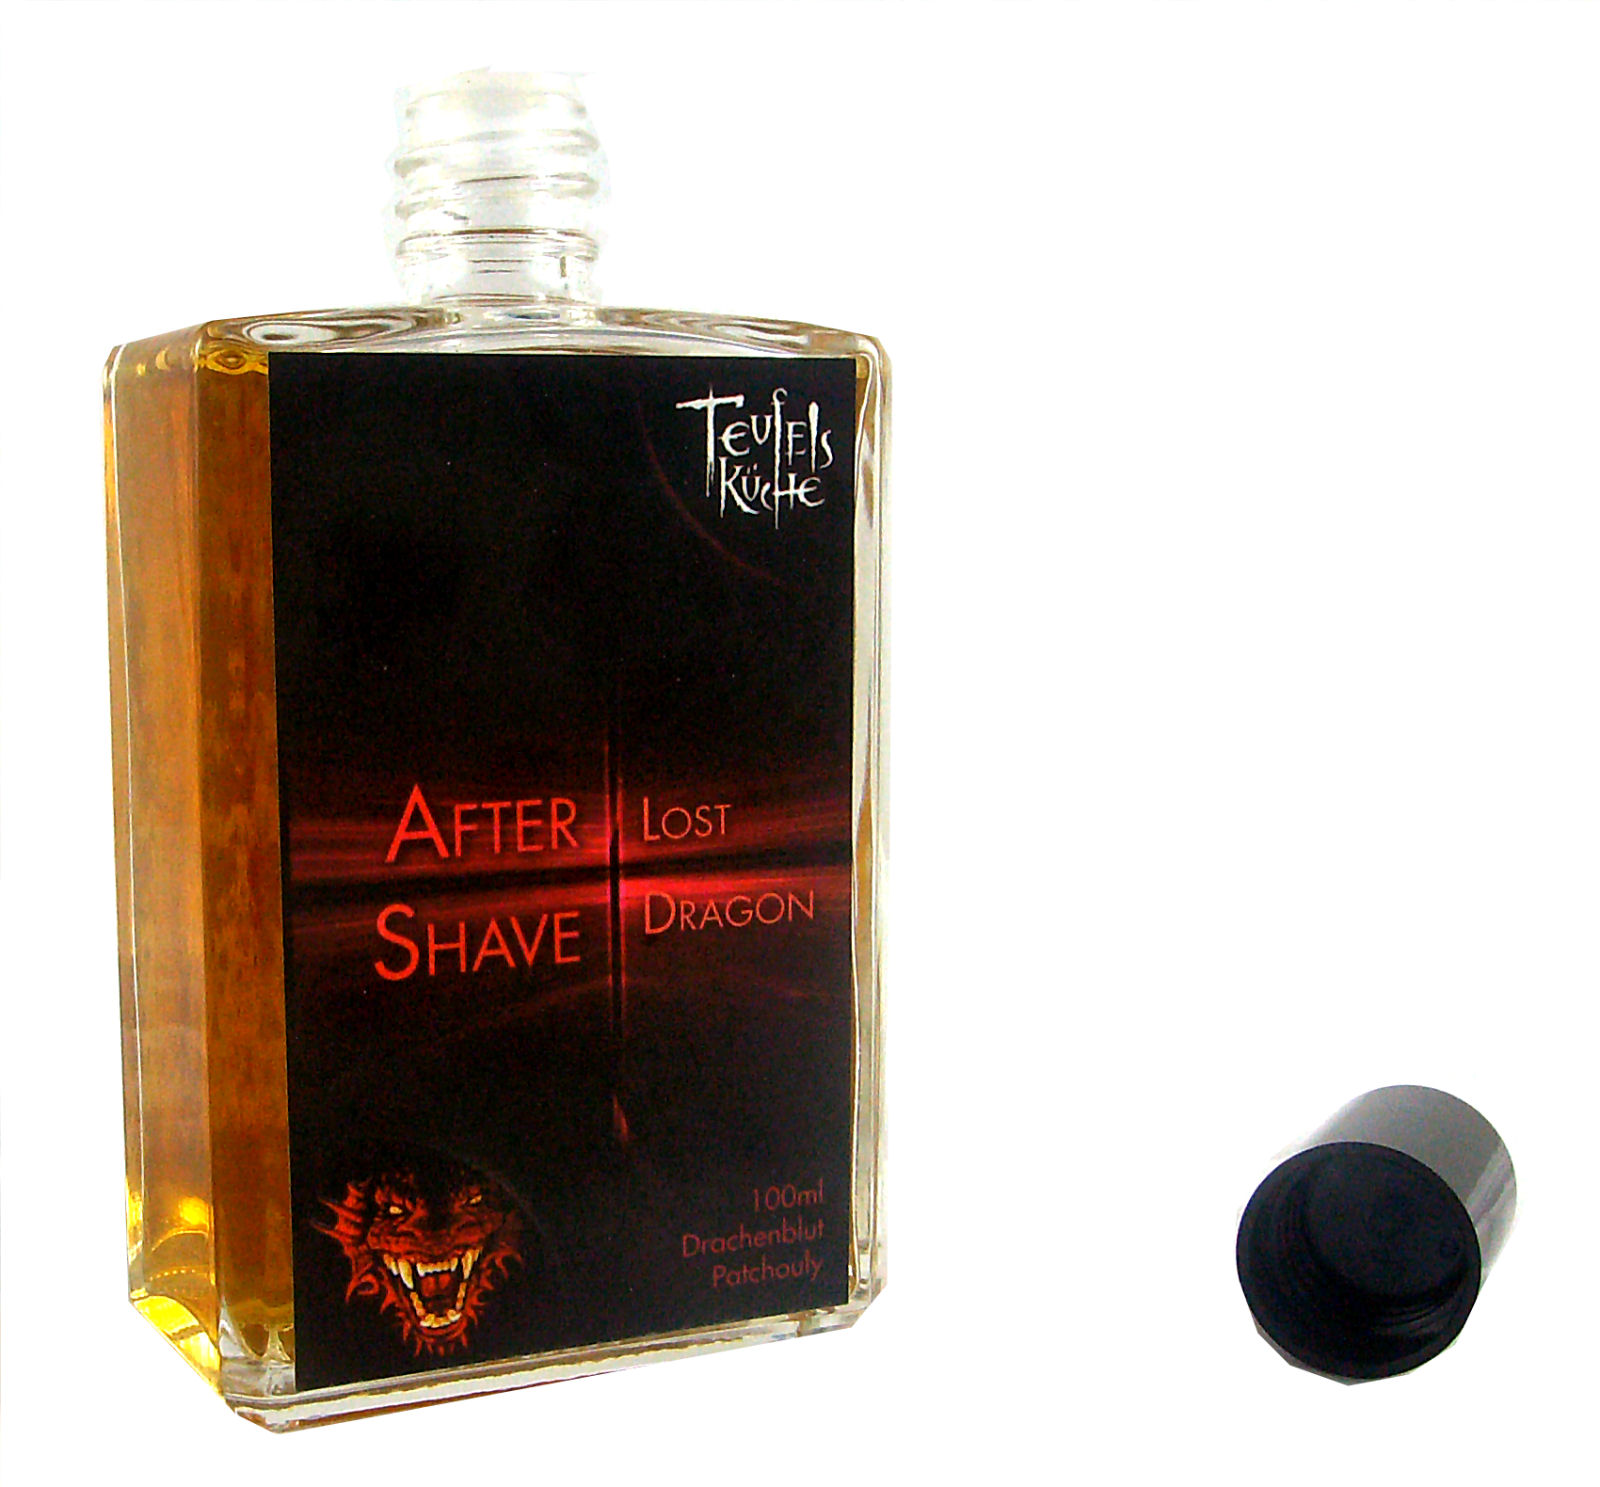 After Shave Patchouli Lost Dragon